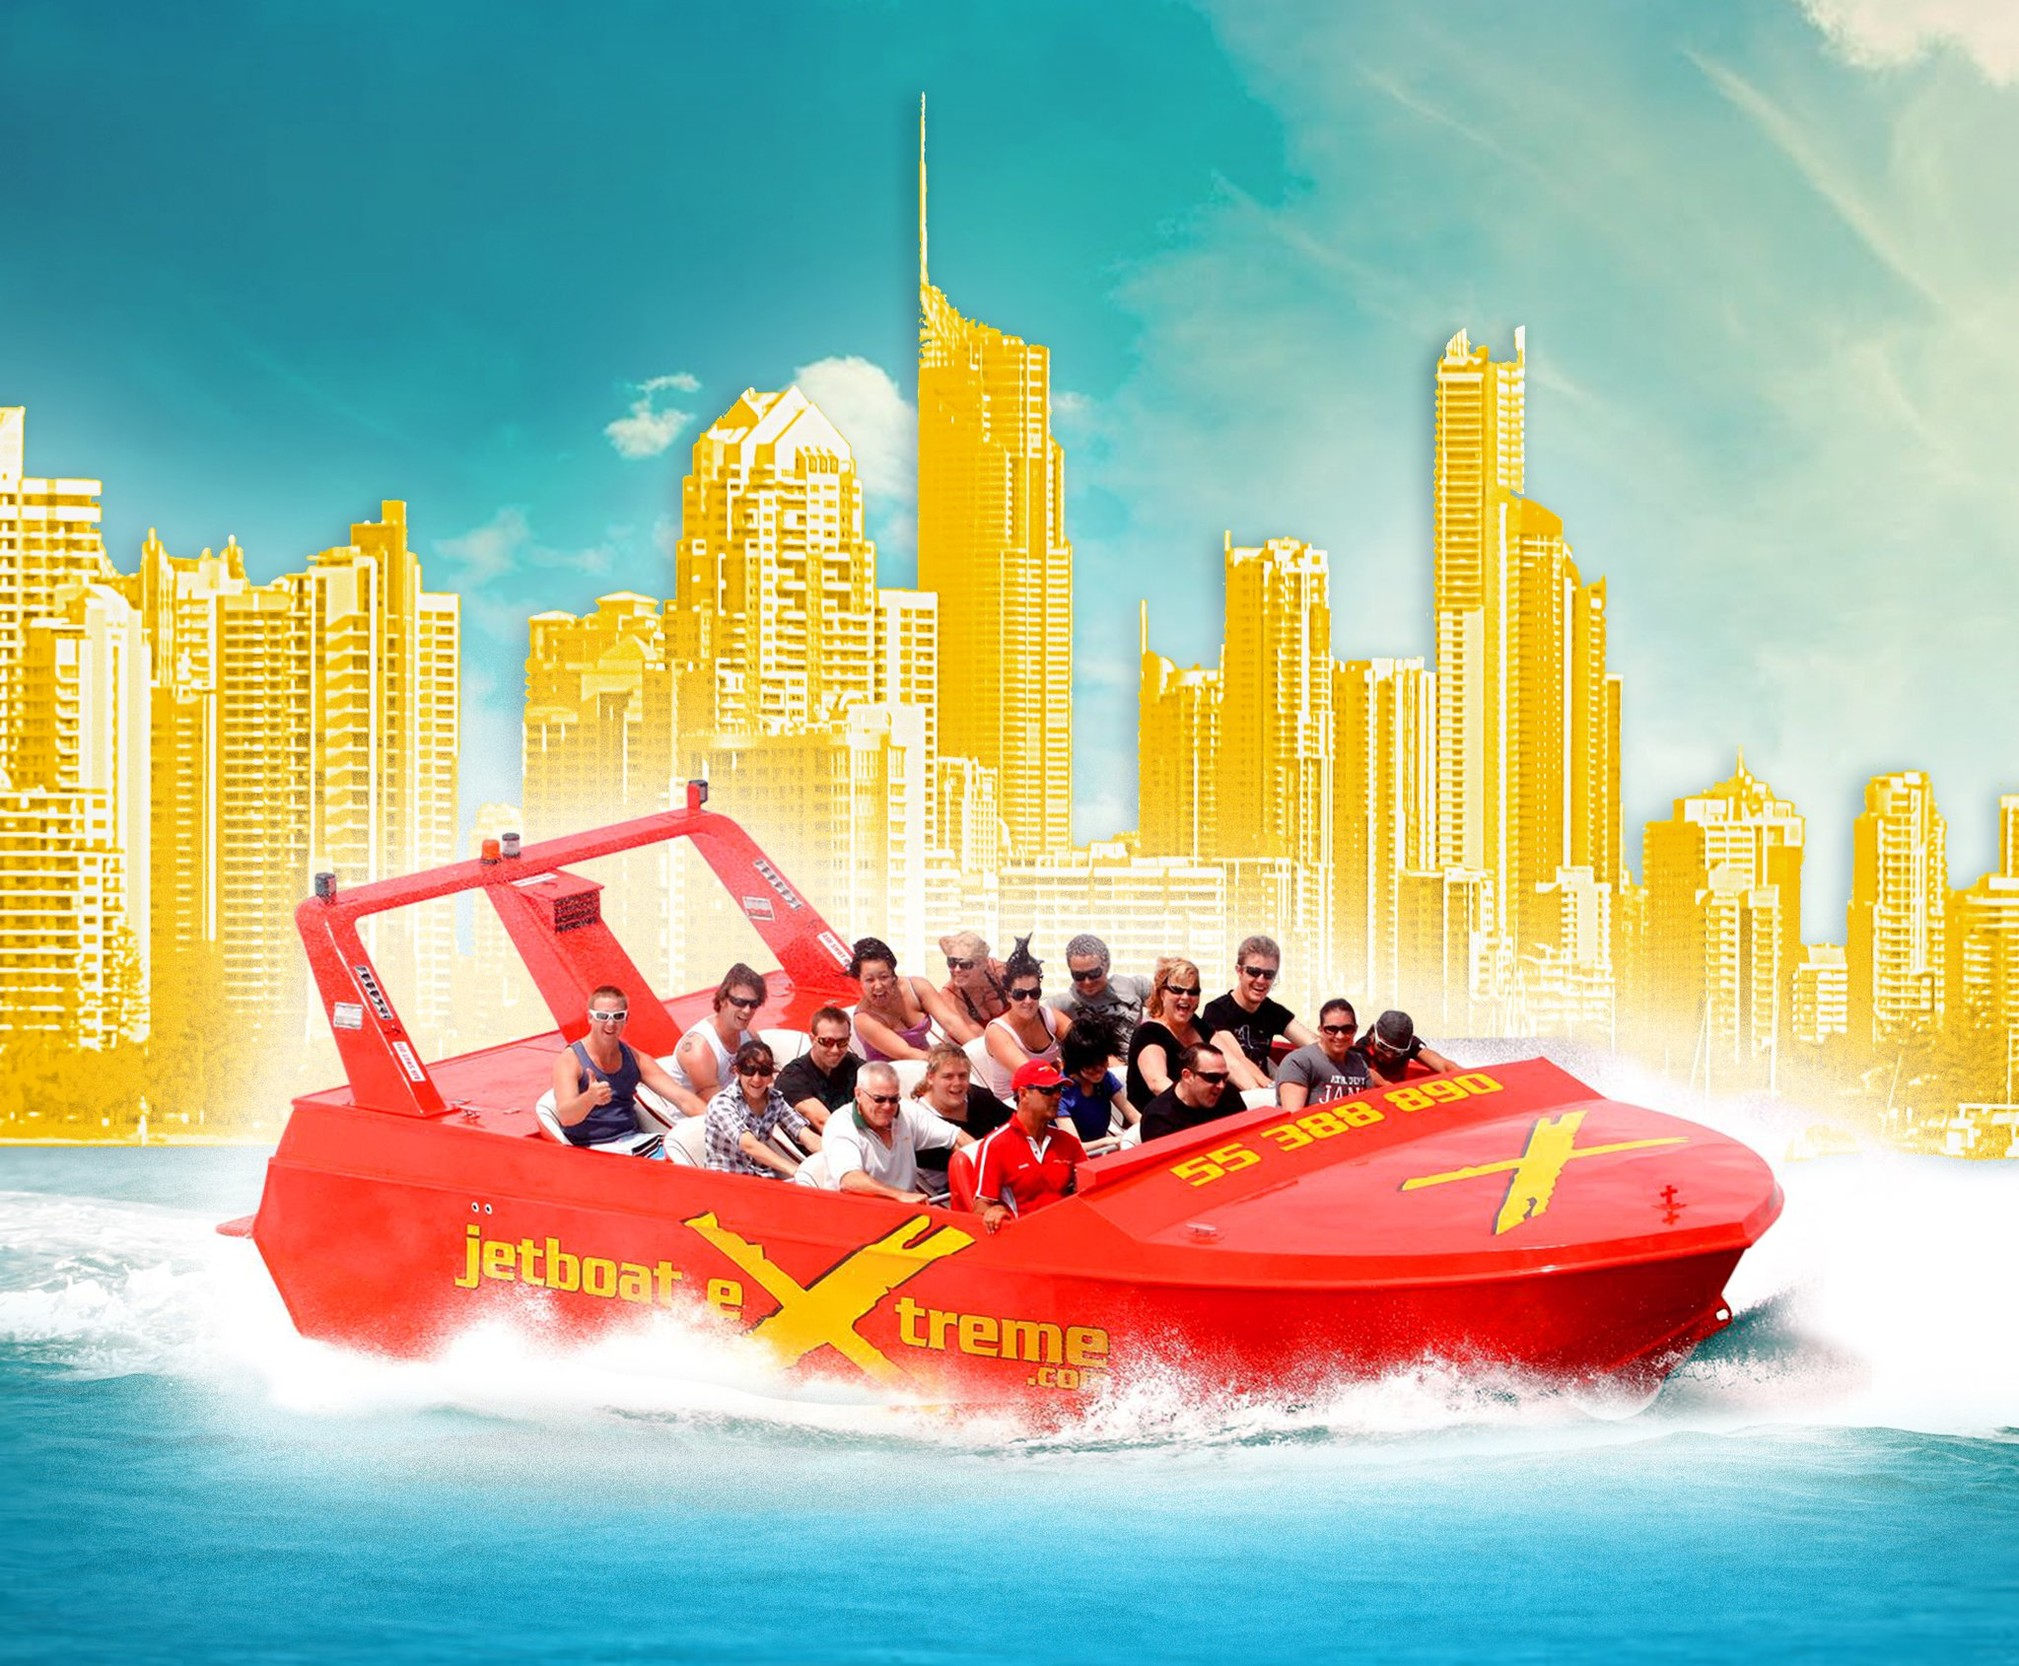 Recommended Gold Coast Activities - We Recommend - Jetboat